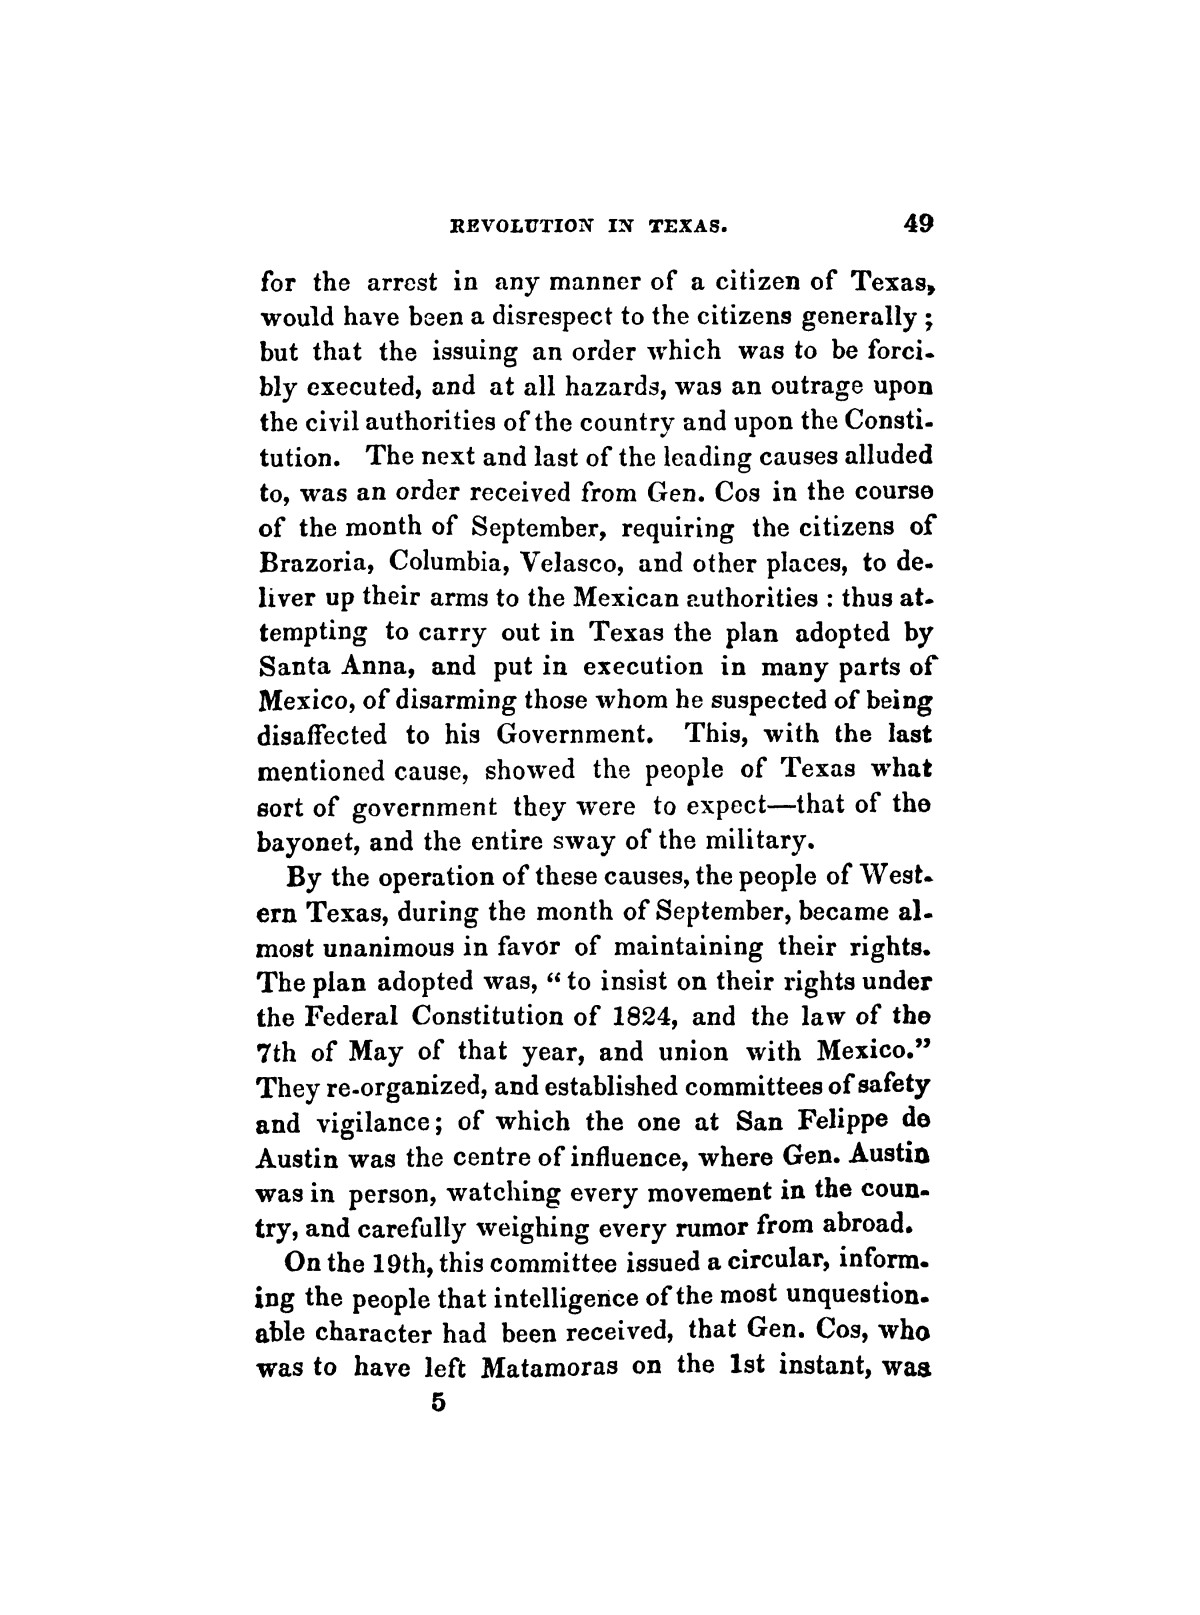 History of the revolution in Texas, particularly of the war of 1835 & '36; together with the latest geographical, topographical, and statistical accounts of the country, from the most authentic sources. Also, an appendix. By the Rev. C. Newell.                                                                                                      [Sequence #]: 61 of 227